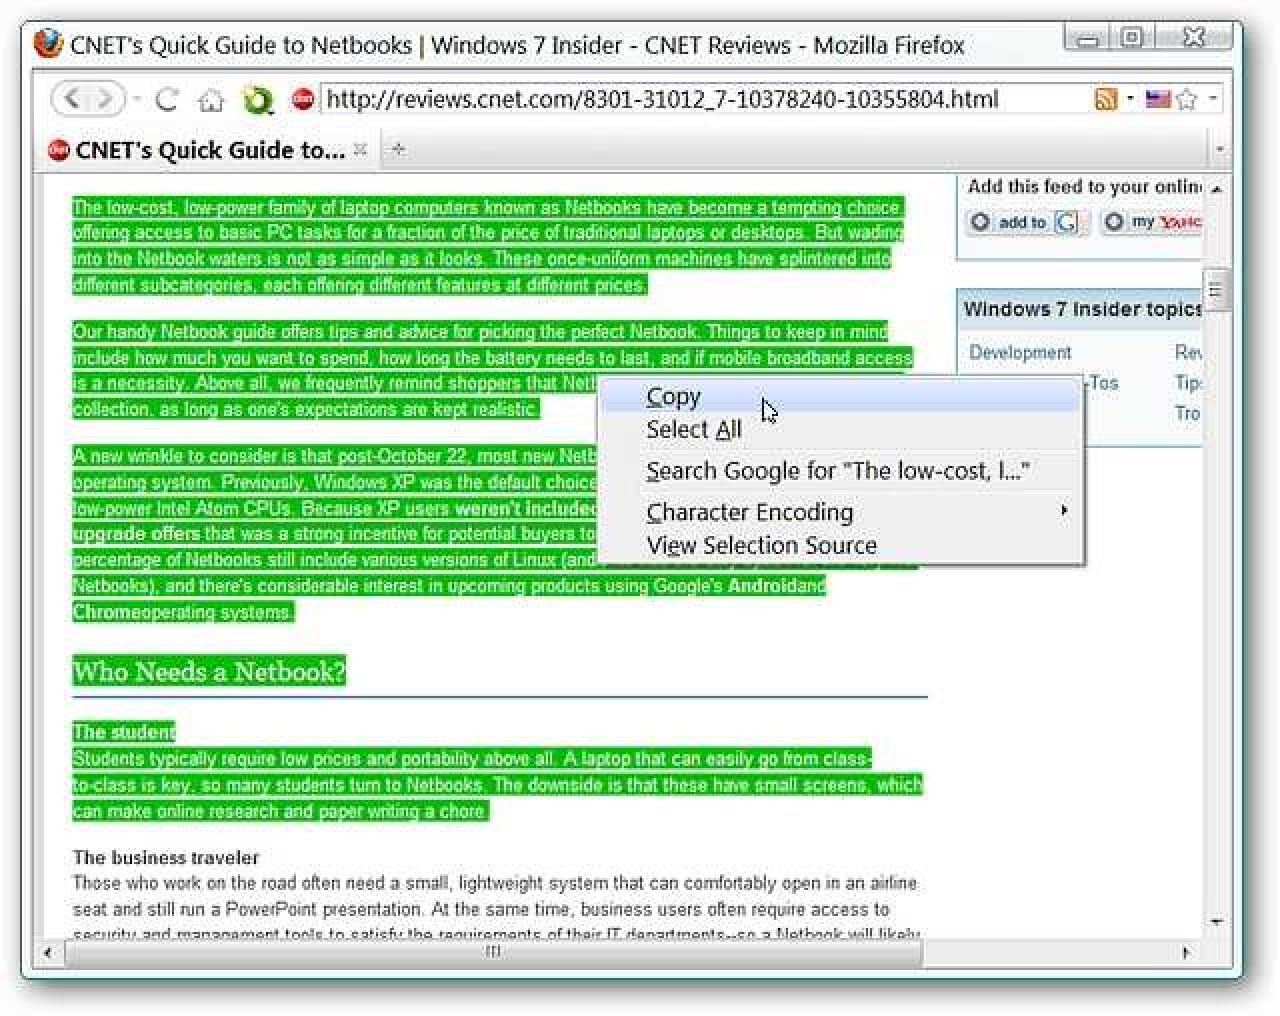 Remove Text Formatting in Firefox the Easy Way